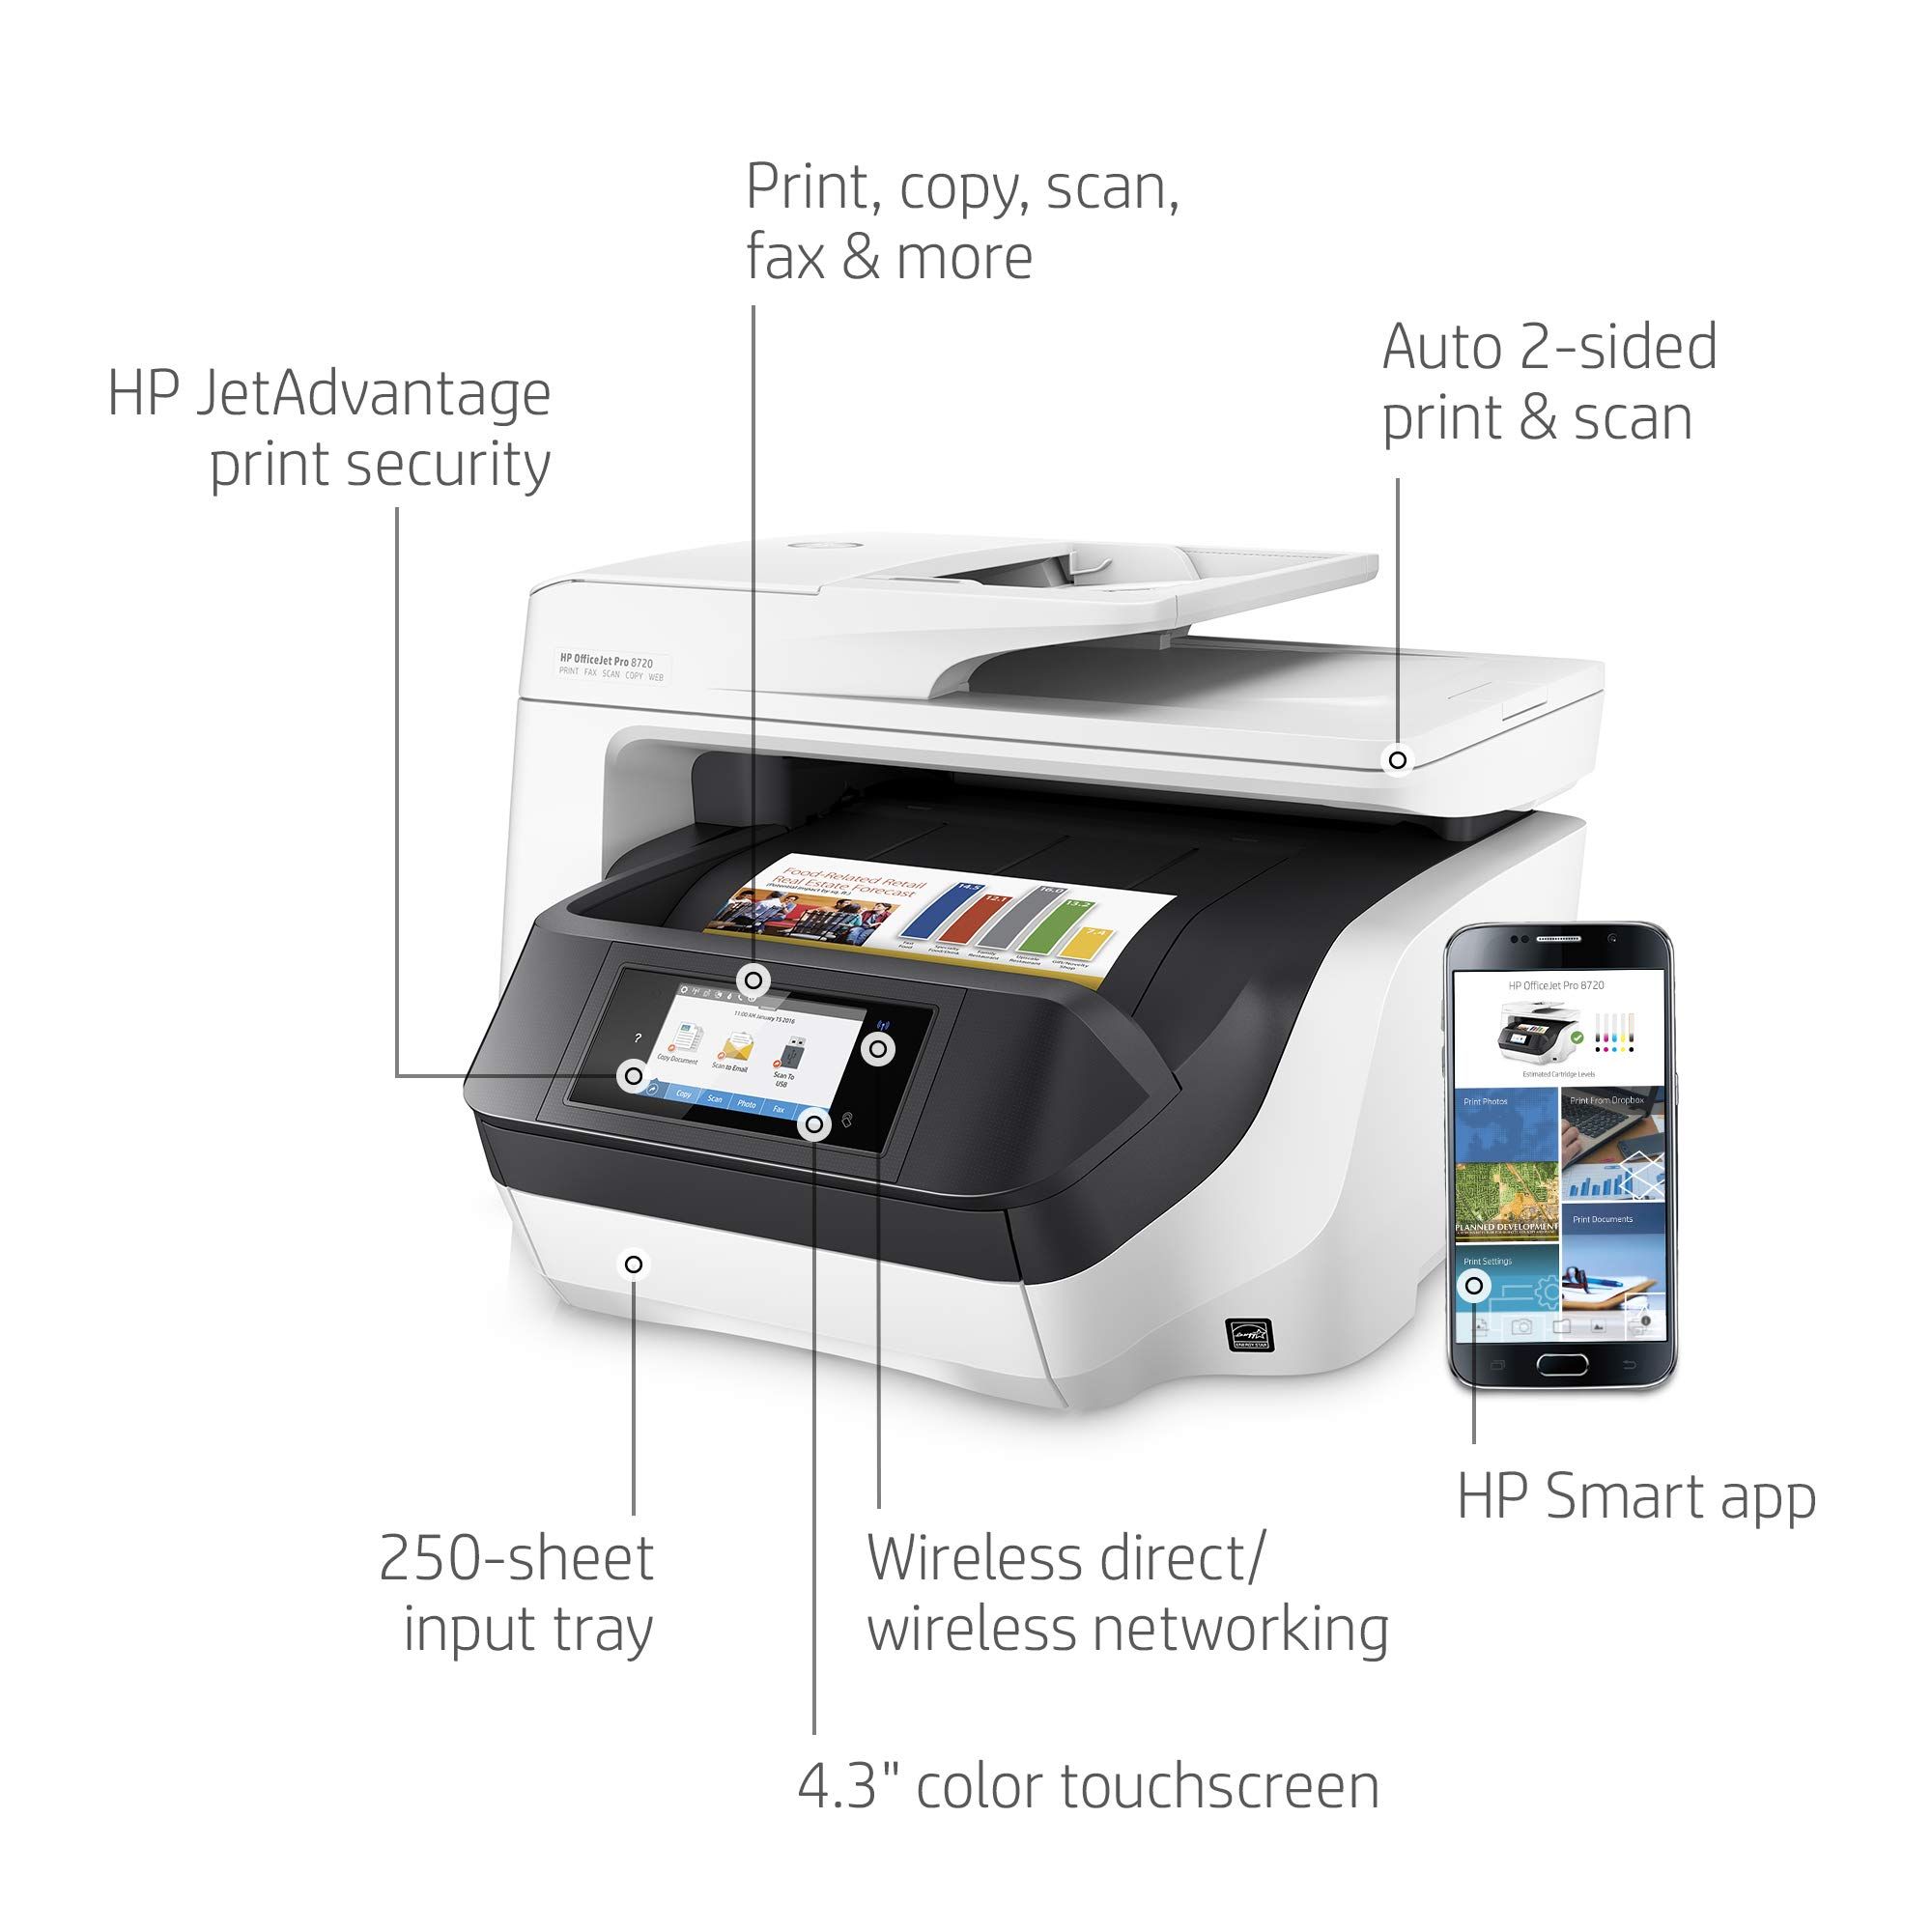 HP OfficeJet Pro 8720 All-in-One Wireless Printer with